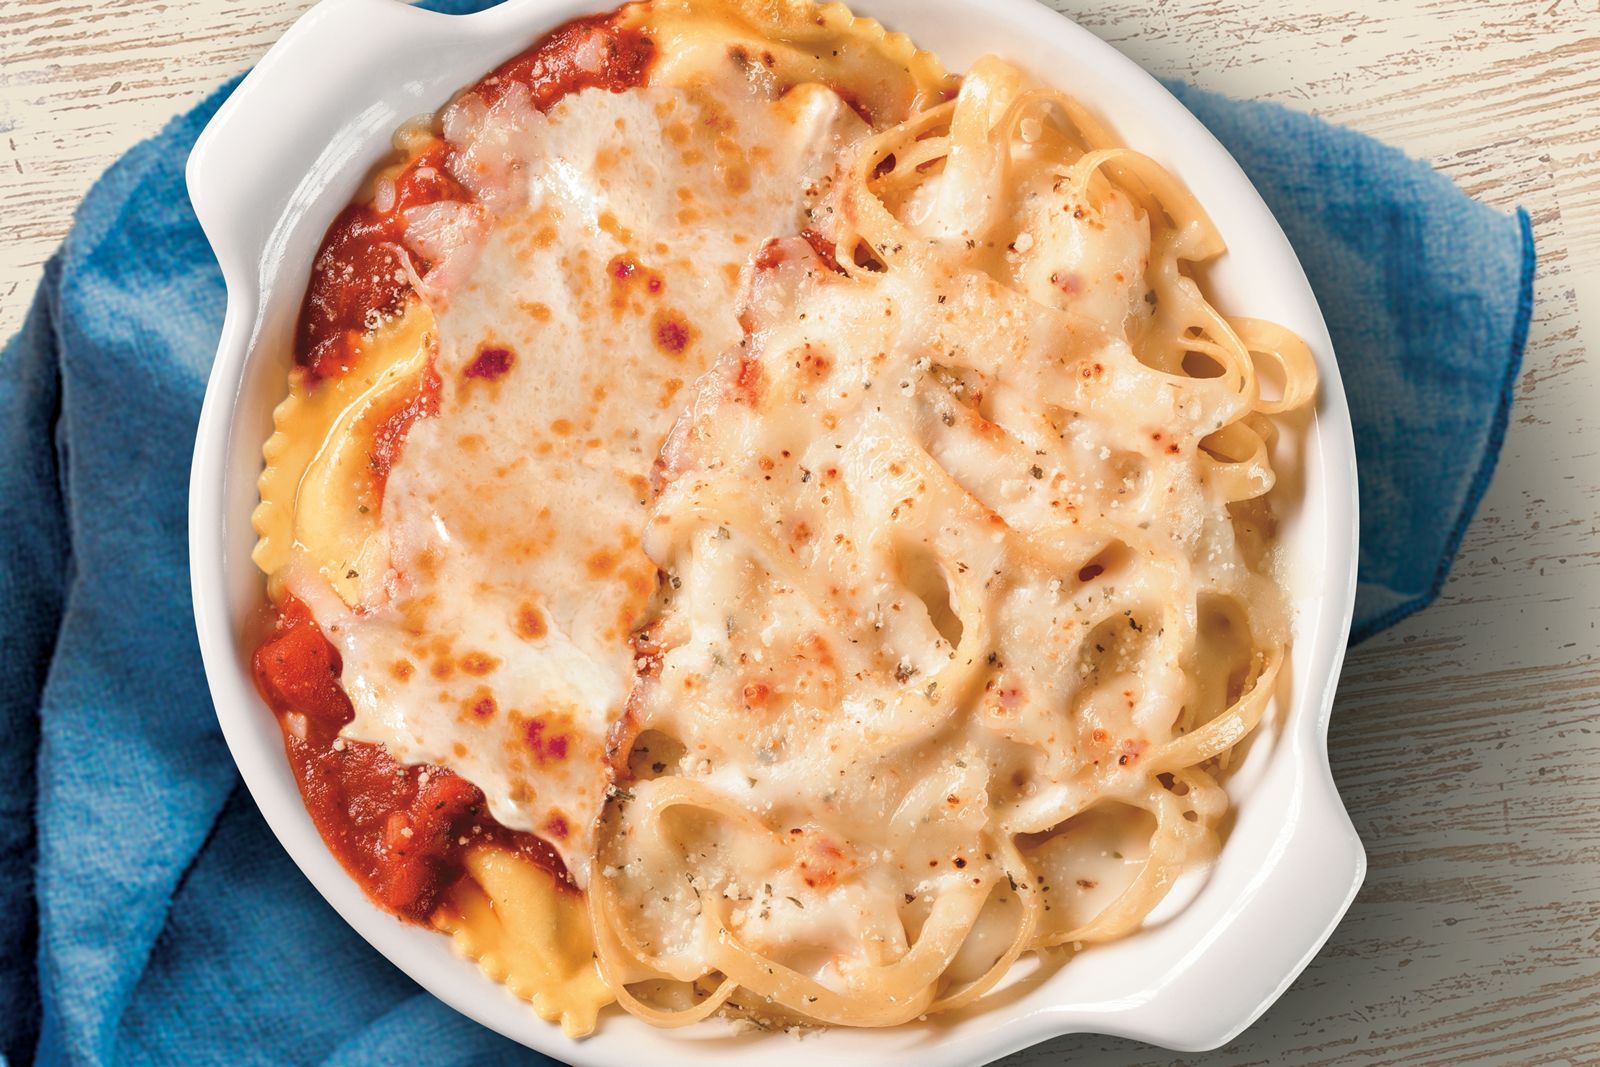 Fazoli's Offers Value and Variety with New 5 Under $5